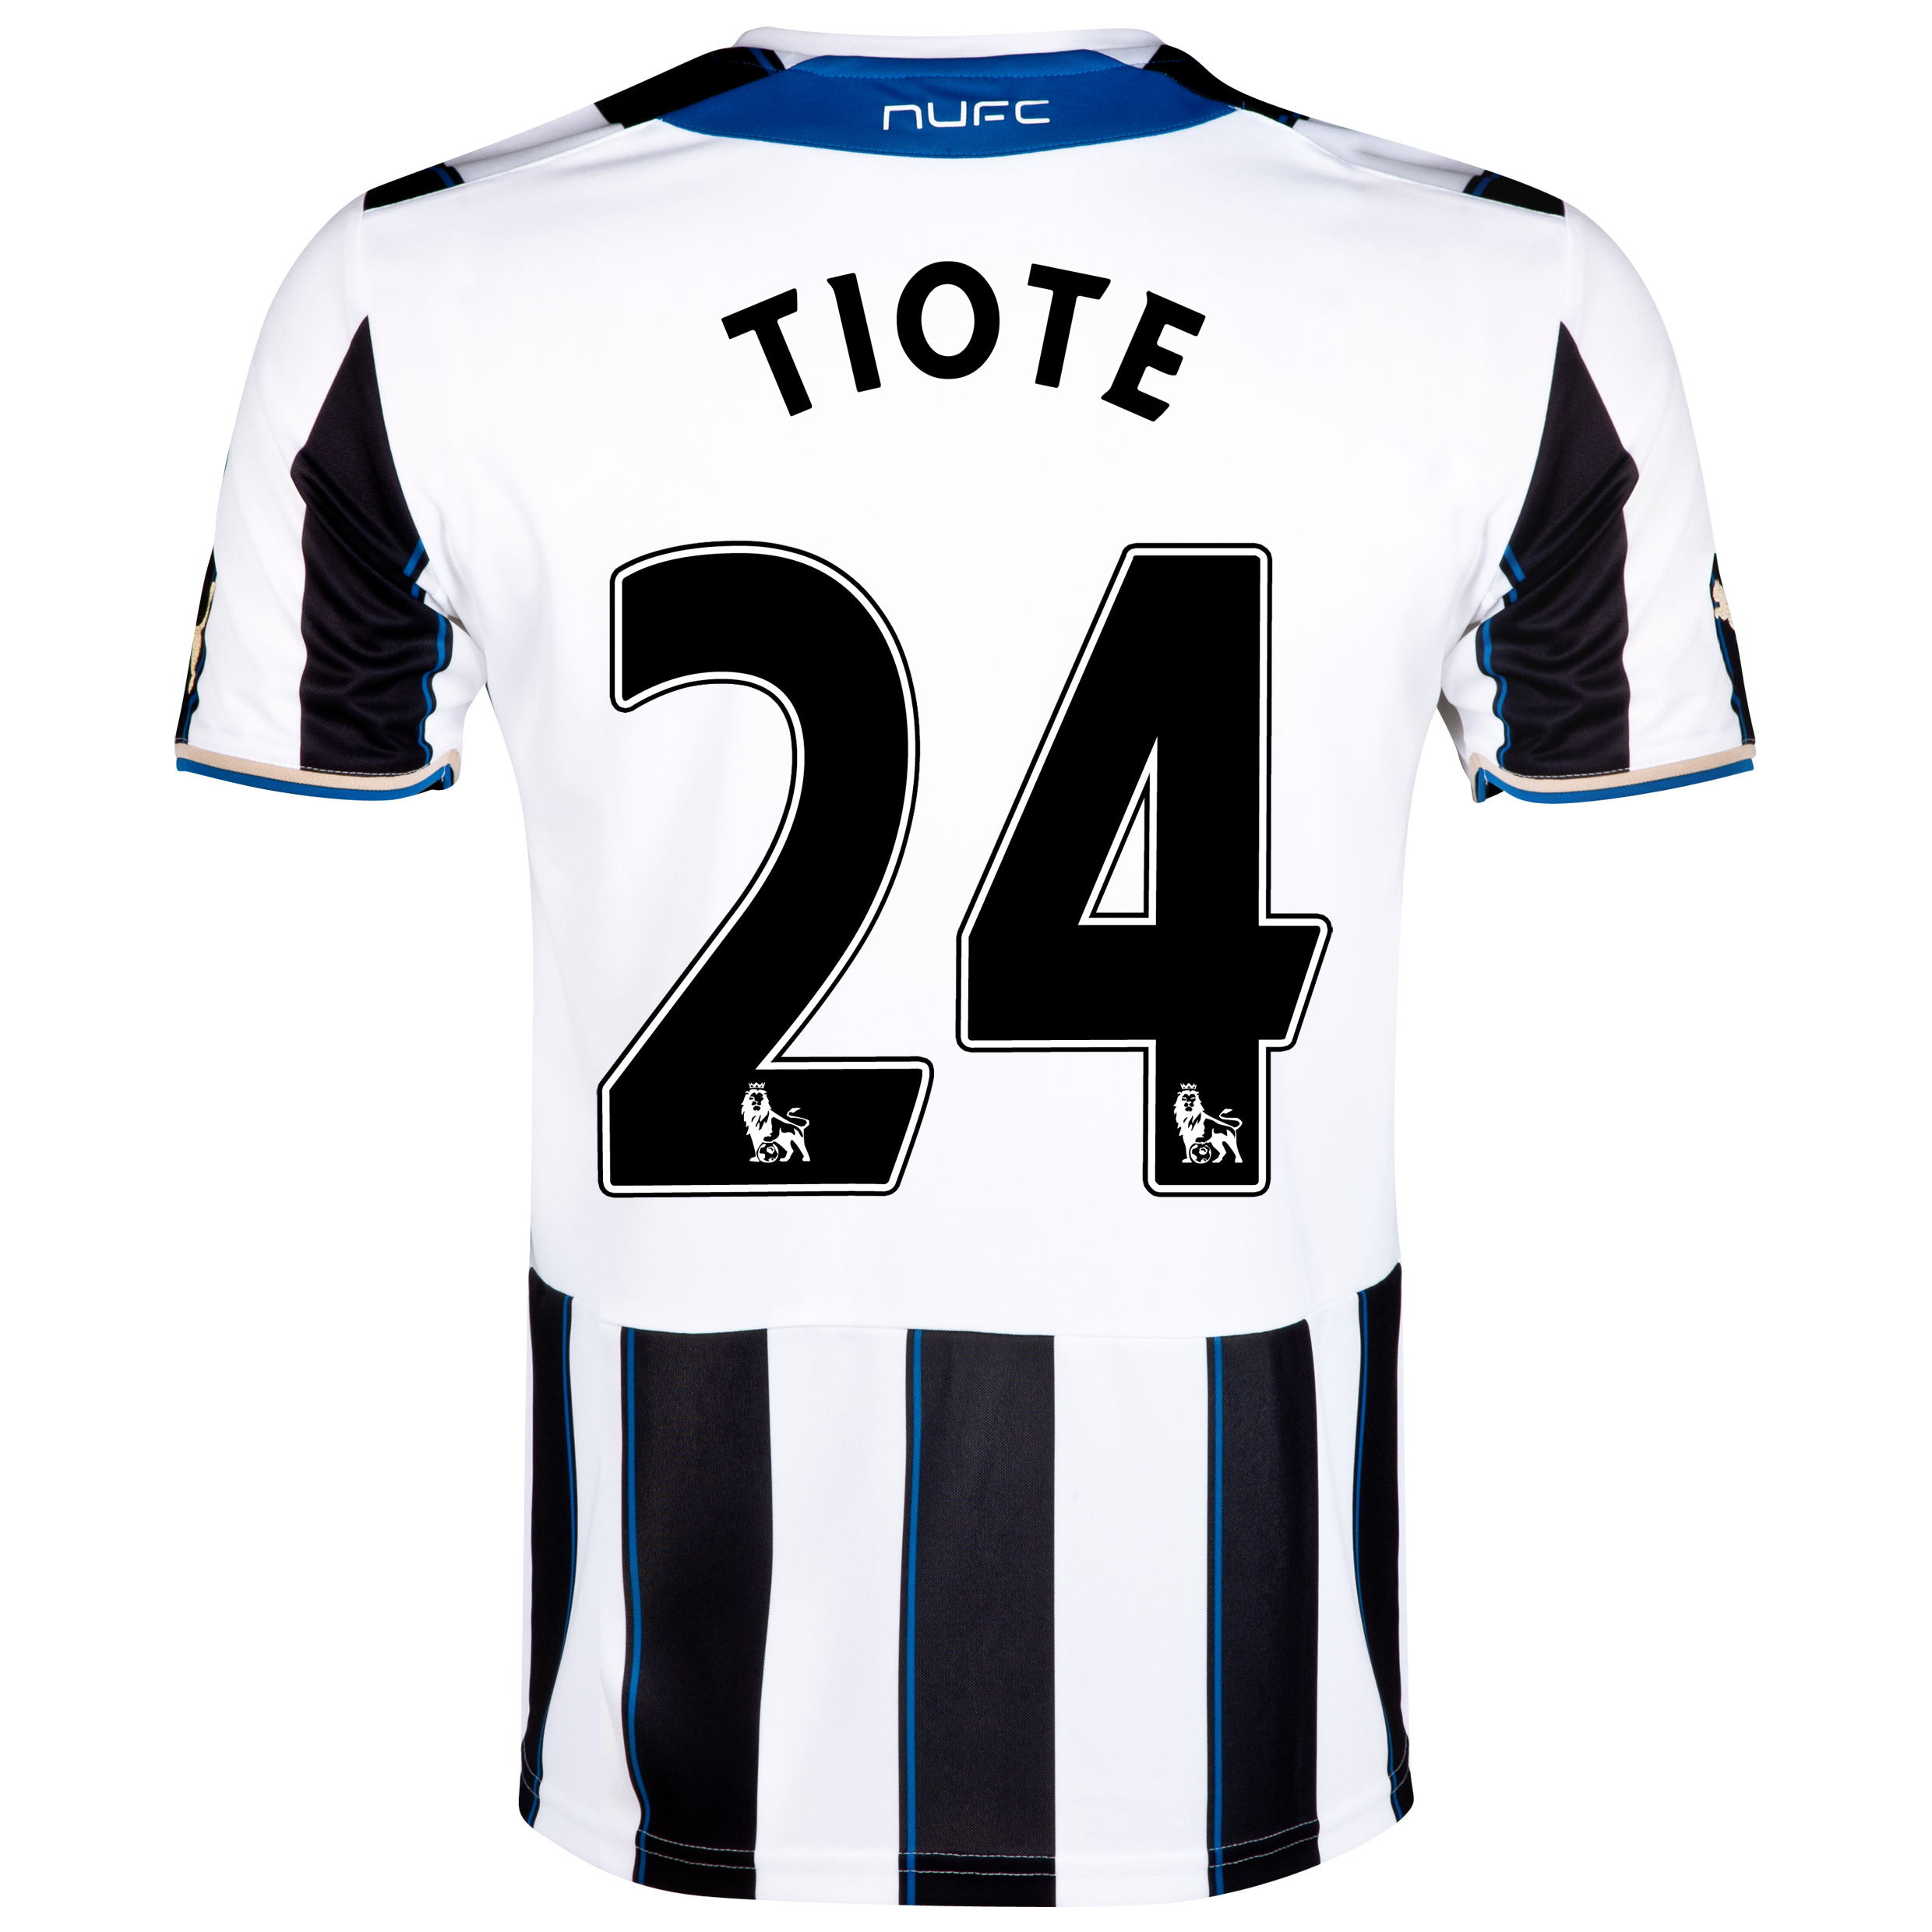 Newcastle United Home Shirt 2013/14 with Tiote 24 printing